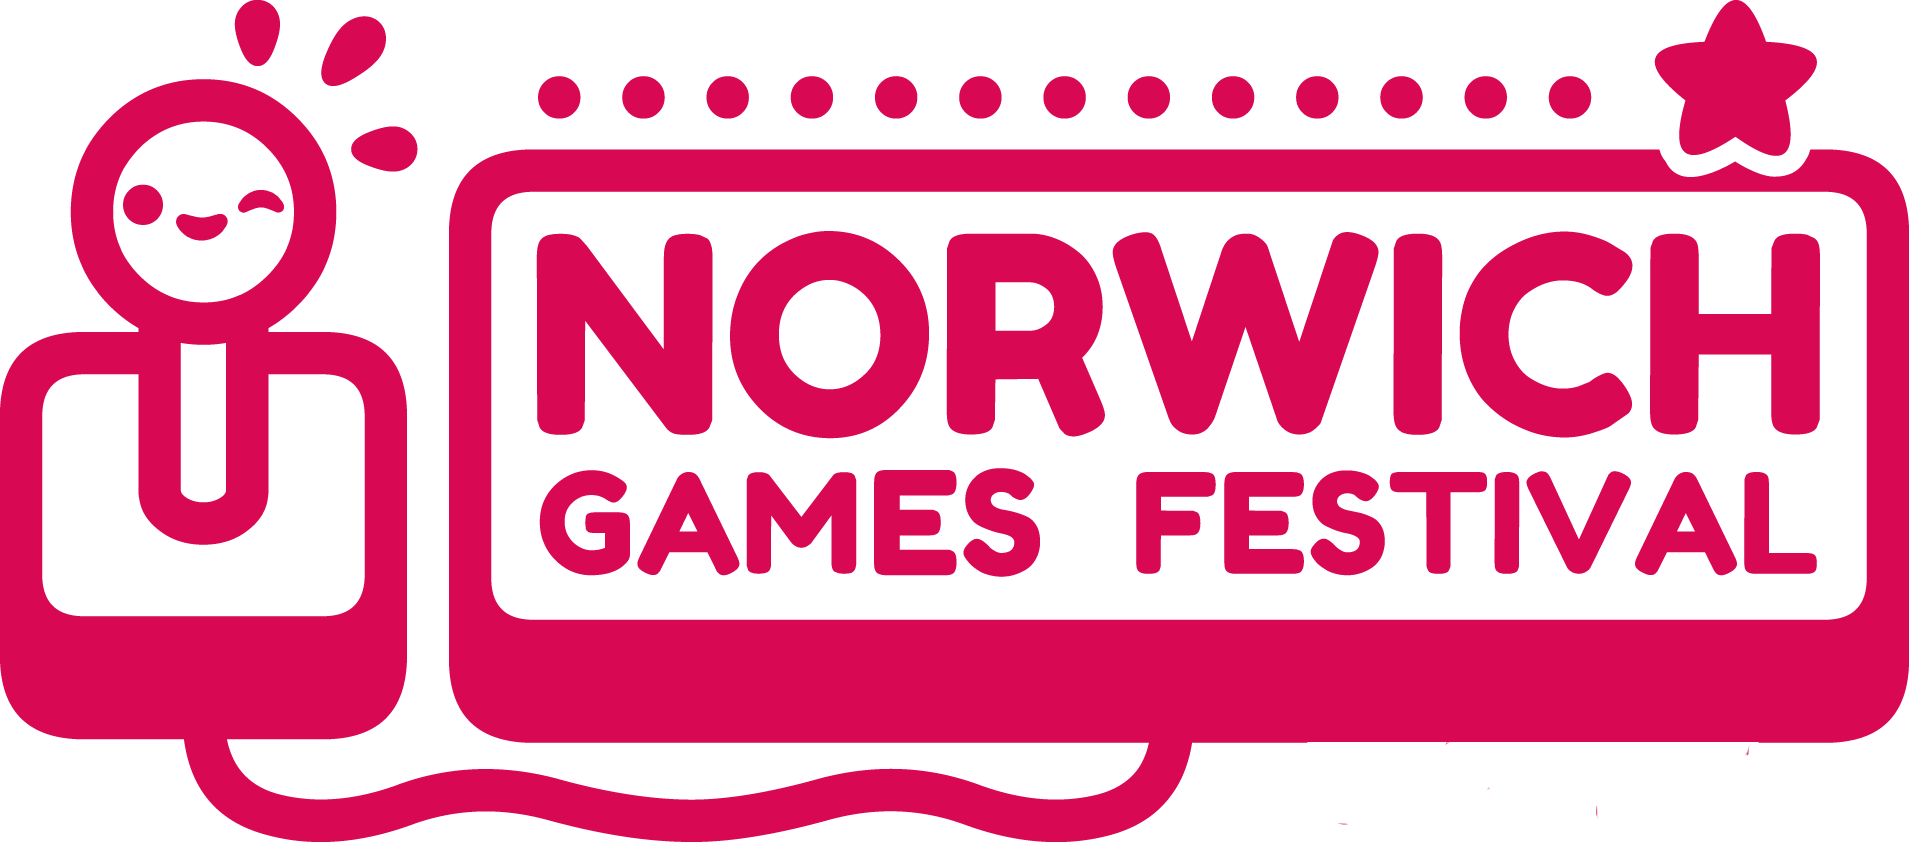 David Doak - GoldenEye Retrospective - Norwich Games Festival is a free, family-friendly celebration of video games, brought to you by The Forum. Explore the latest releases, classic retro games, coding and game technology. Norwich Games Festival returns to The Forum Monday 27 May – Saturday 1 June 2019.We're hosting a whole bunch of talks, events and workshops at this year's Festival - details of which can be found on our website.Come and join Dr David Doak (Rare, Free Radical Design) on a top security clearance 'for your eyes only' trip into the GoldenEye archives. Share his first hand recollections of a unique time in videogame history and speculate on the lessons for today's developers. More information here.